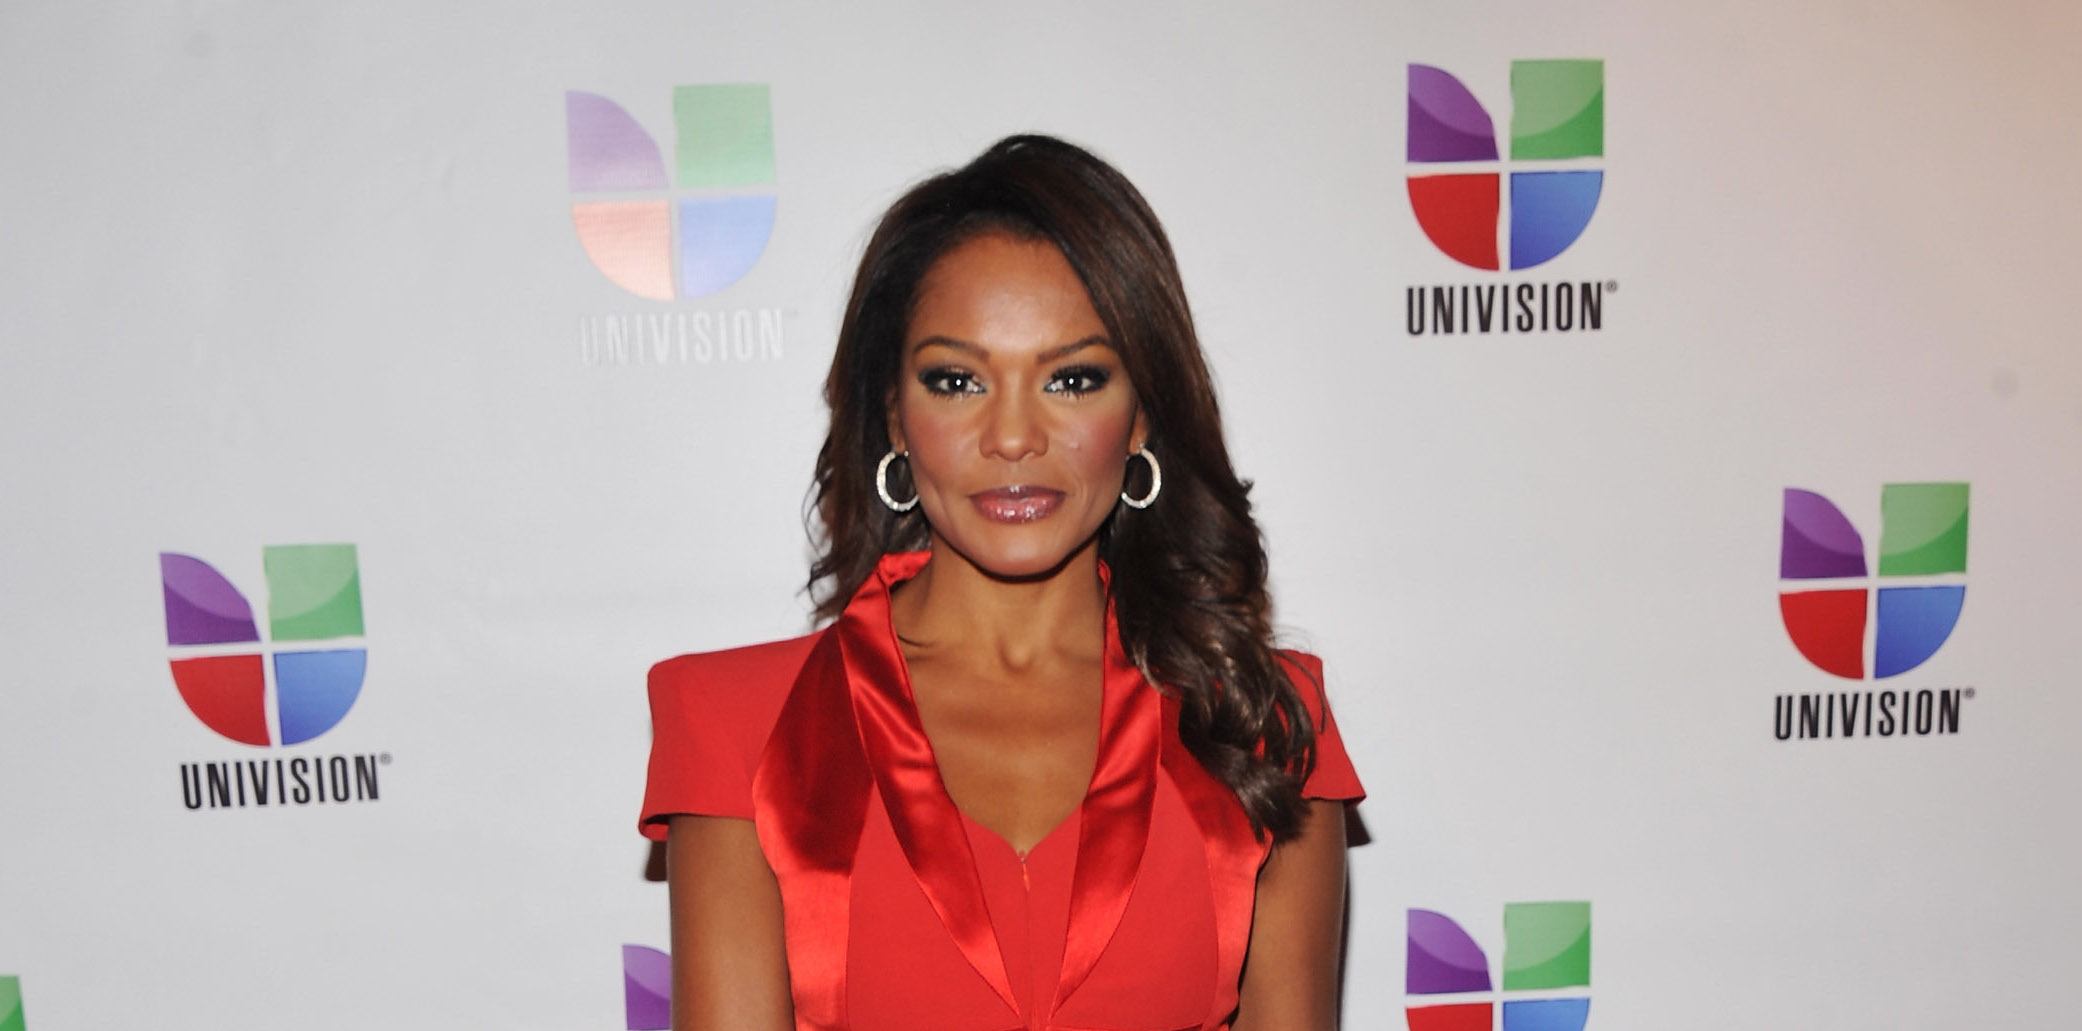 Ilia Calderón Will Make History as Univision's First Afro-Latina Evening News Anchor